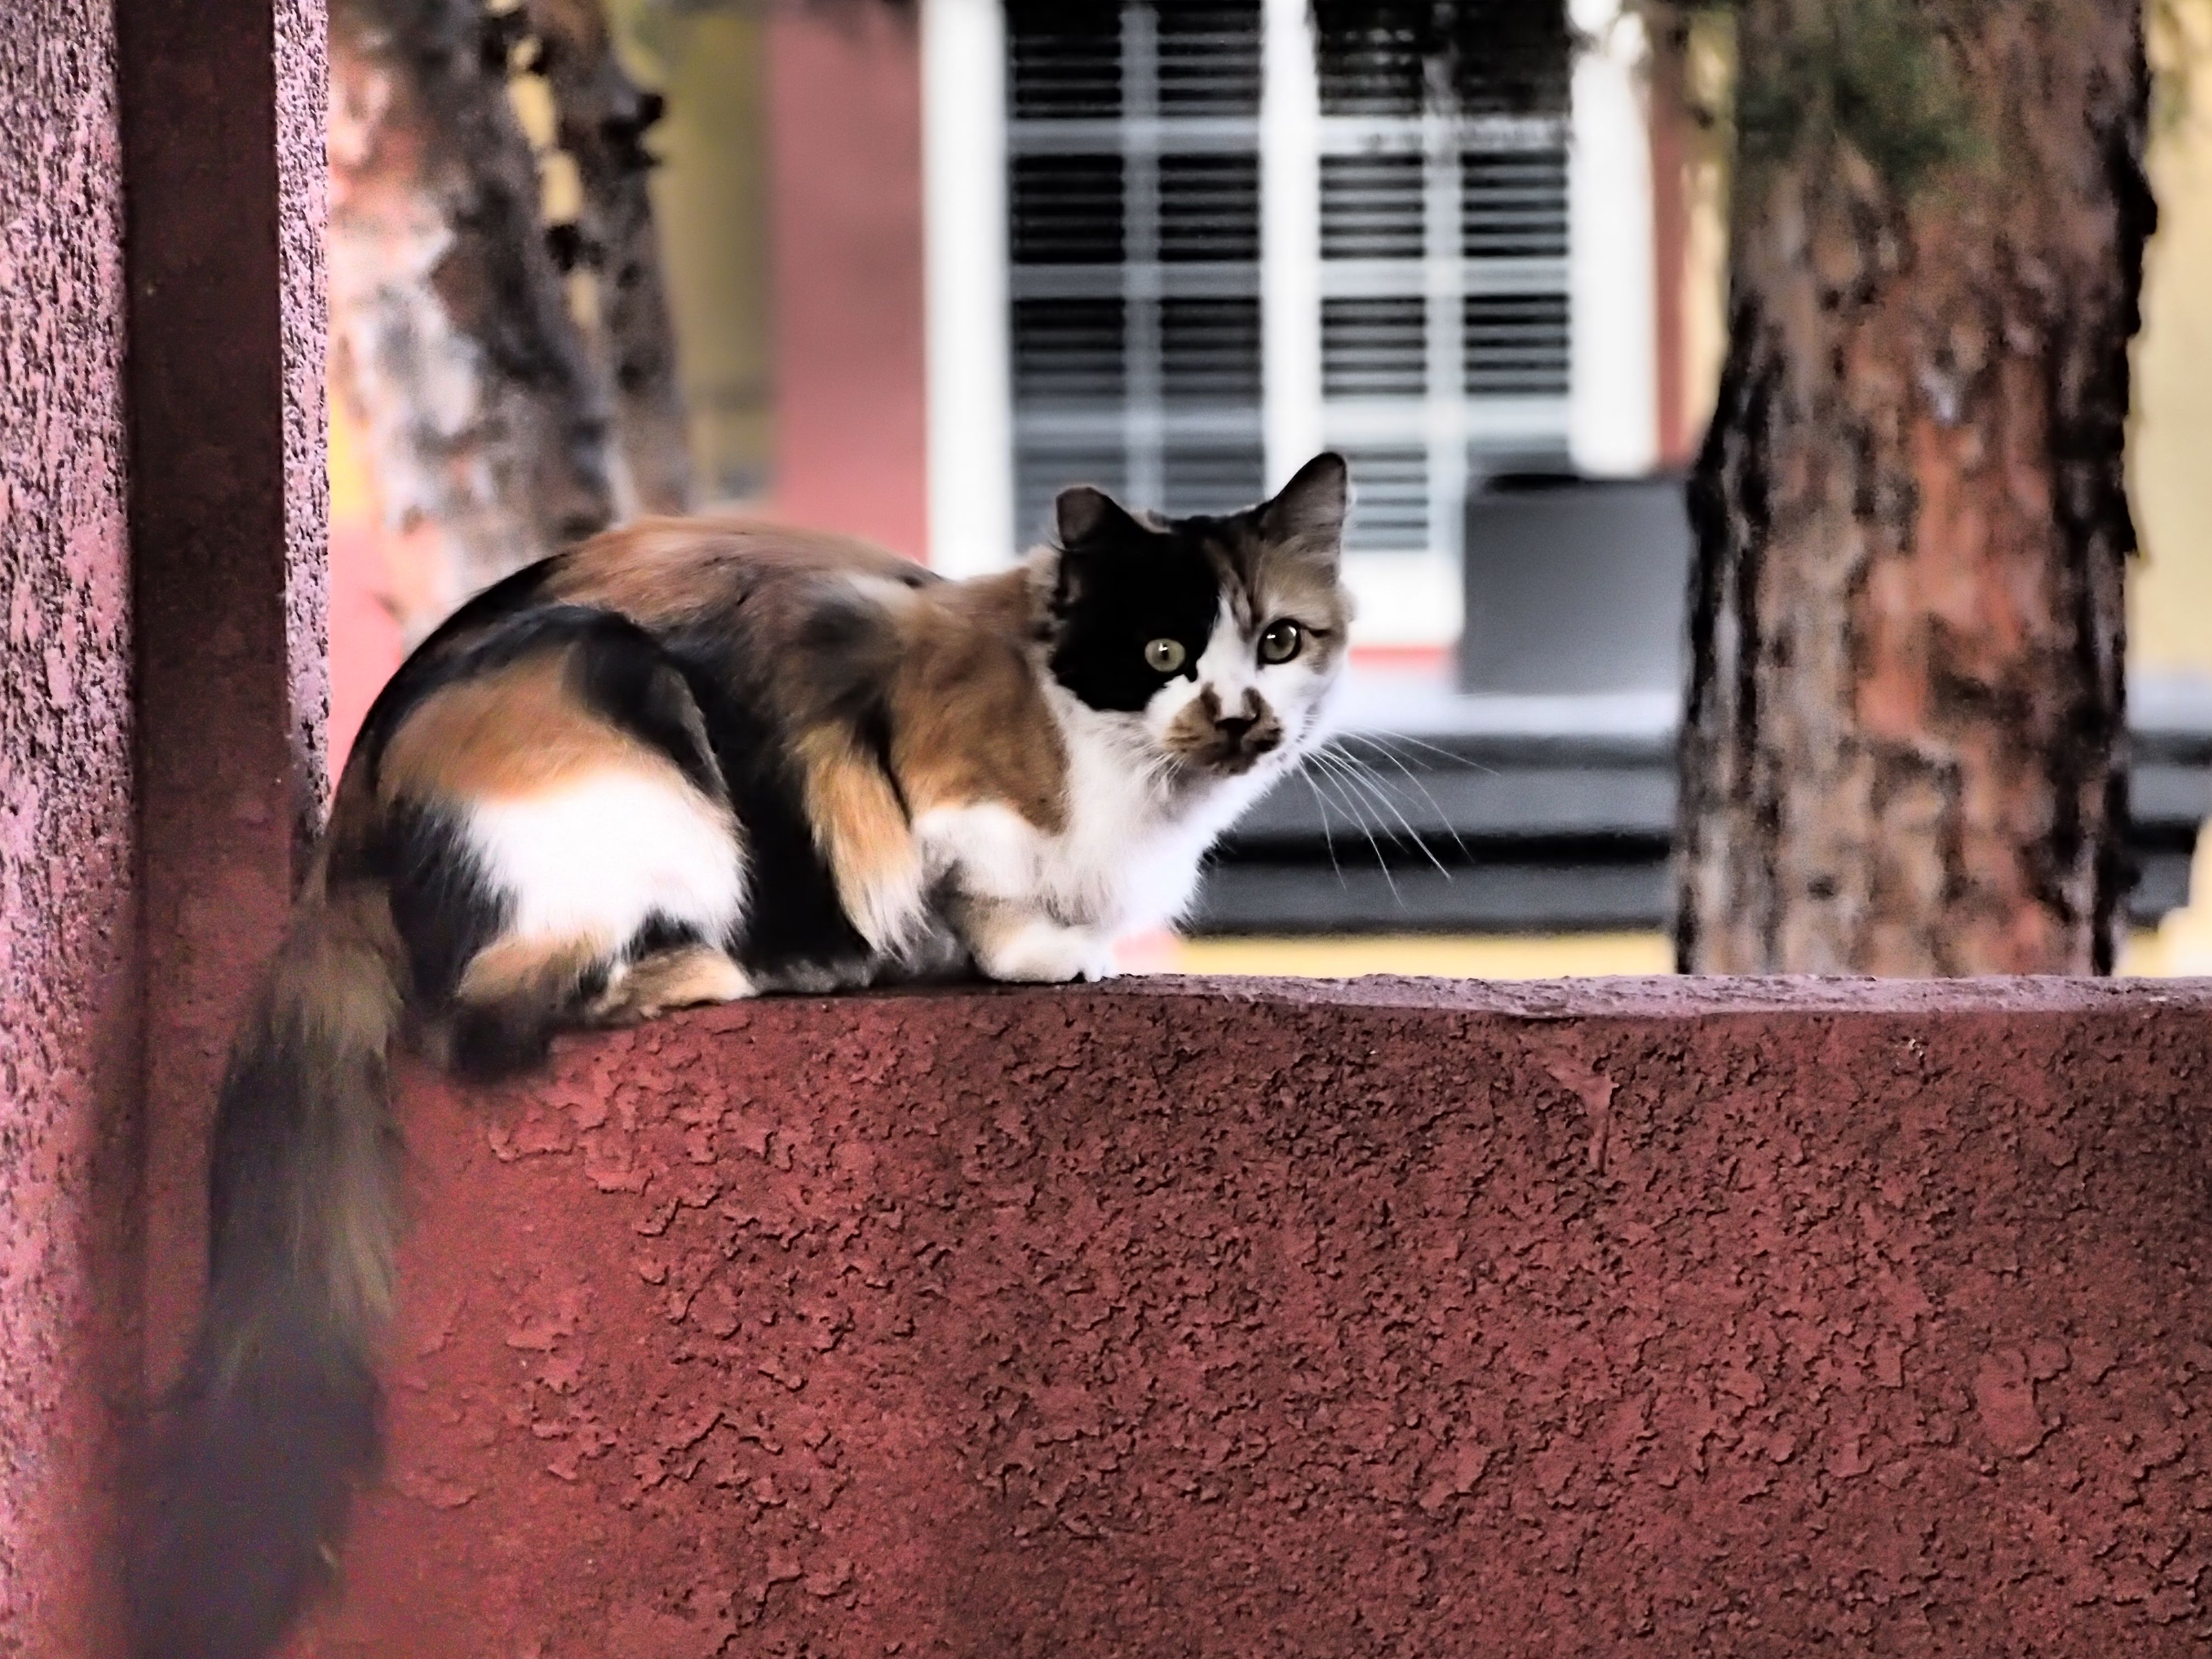 she is one of my strange neighbors this stray cat usually stay